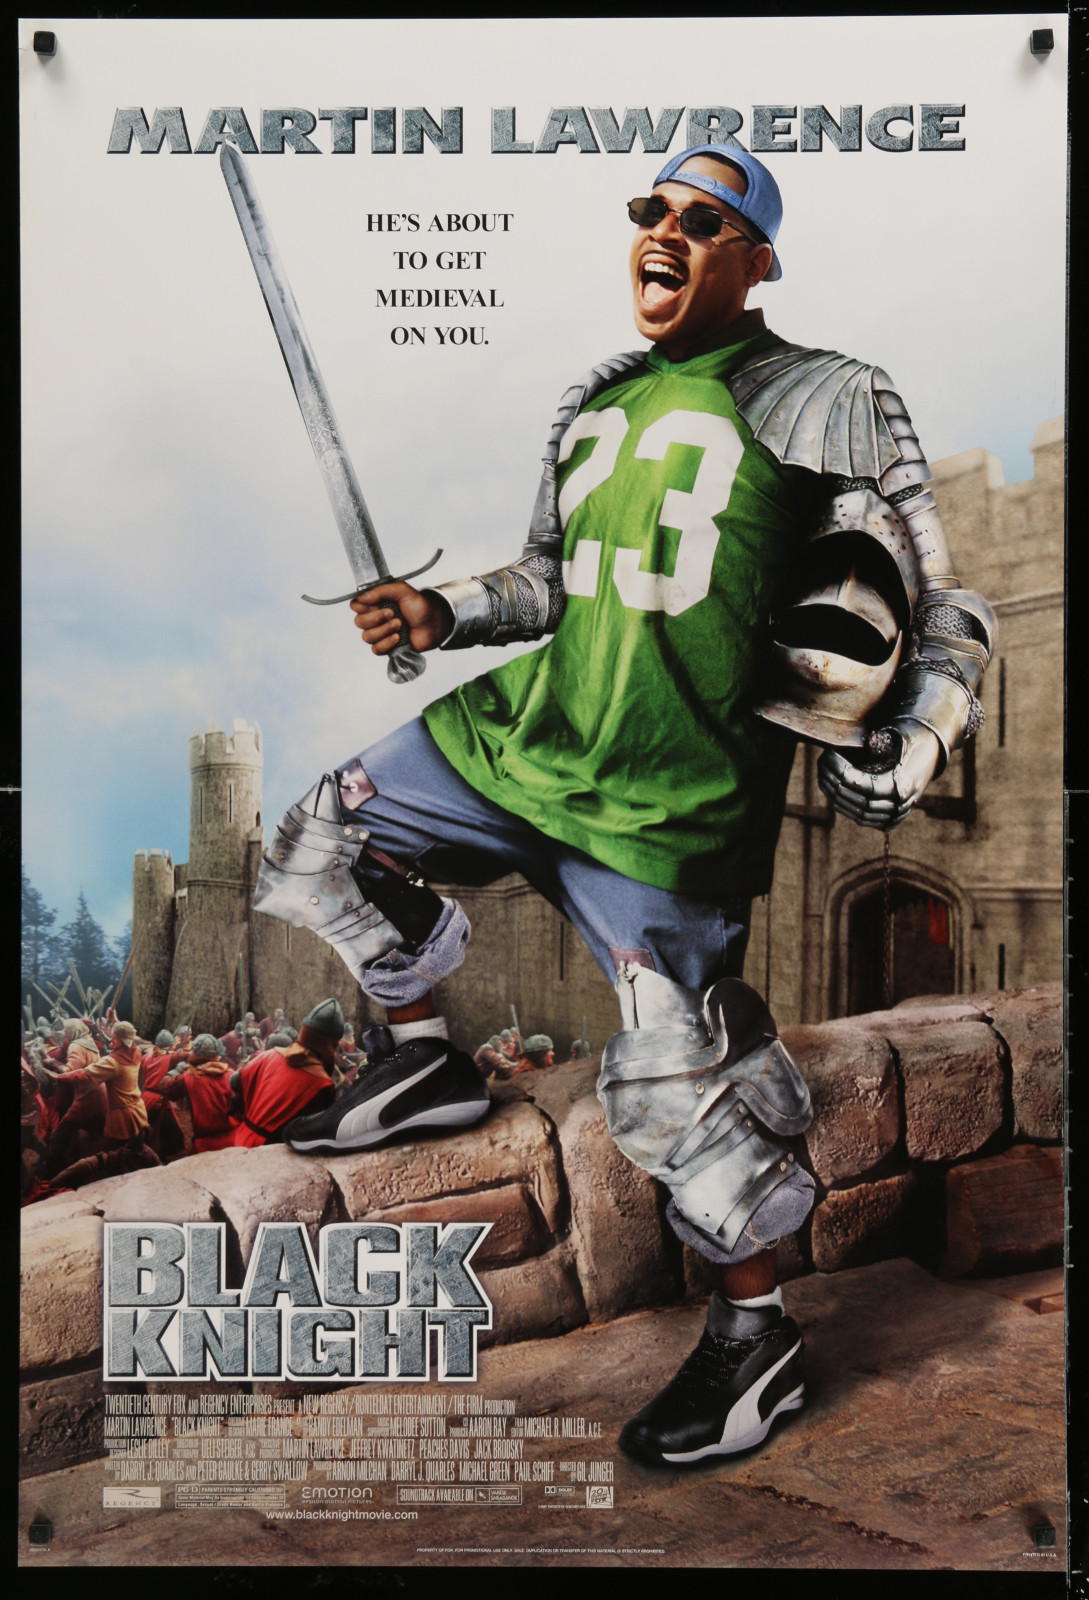 Black Knight 2A438 A Part Of A Lot 18 Unfolded Double-Sided 27X40 Mostly Comedy One-Sheets '90S-00S Great Movie Images!